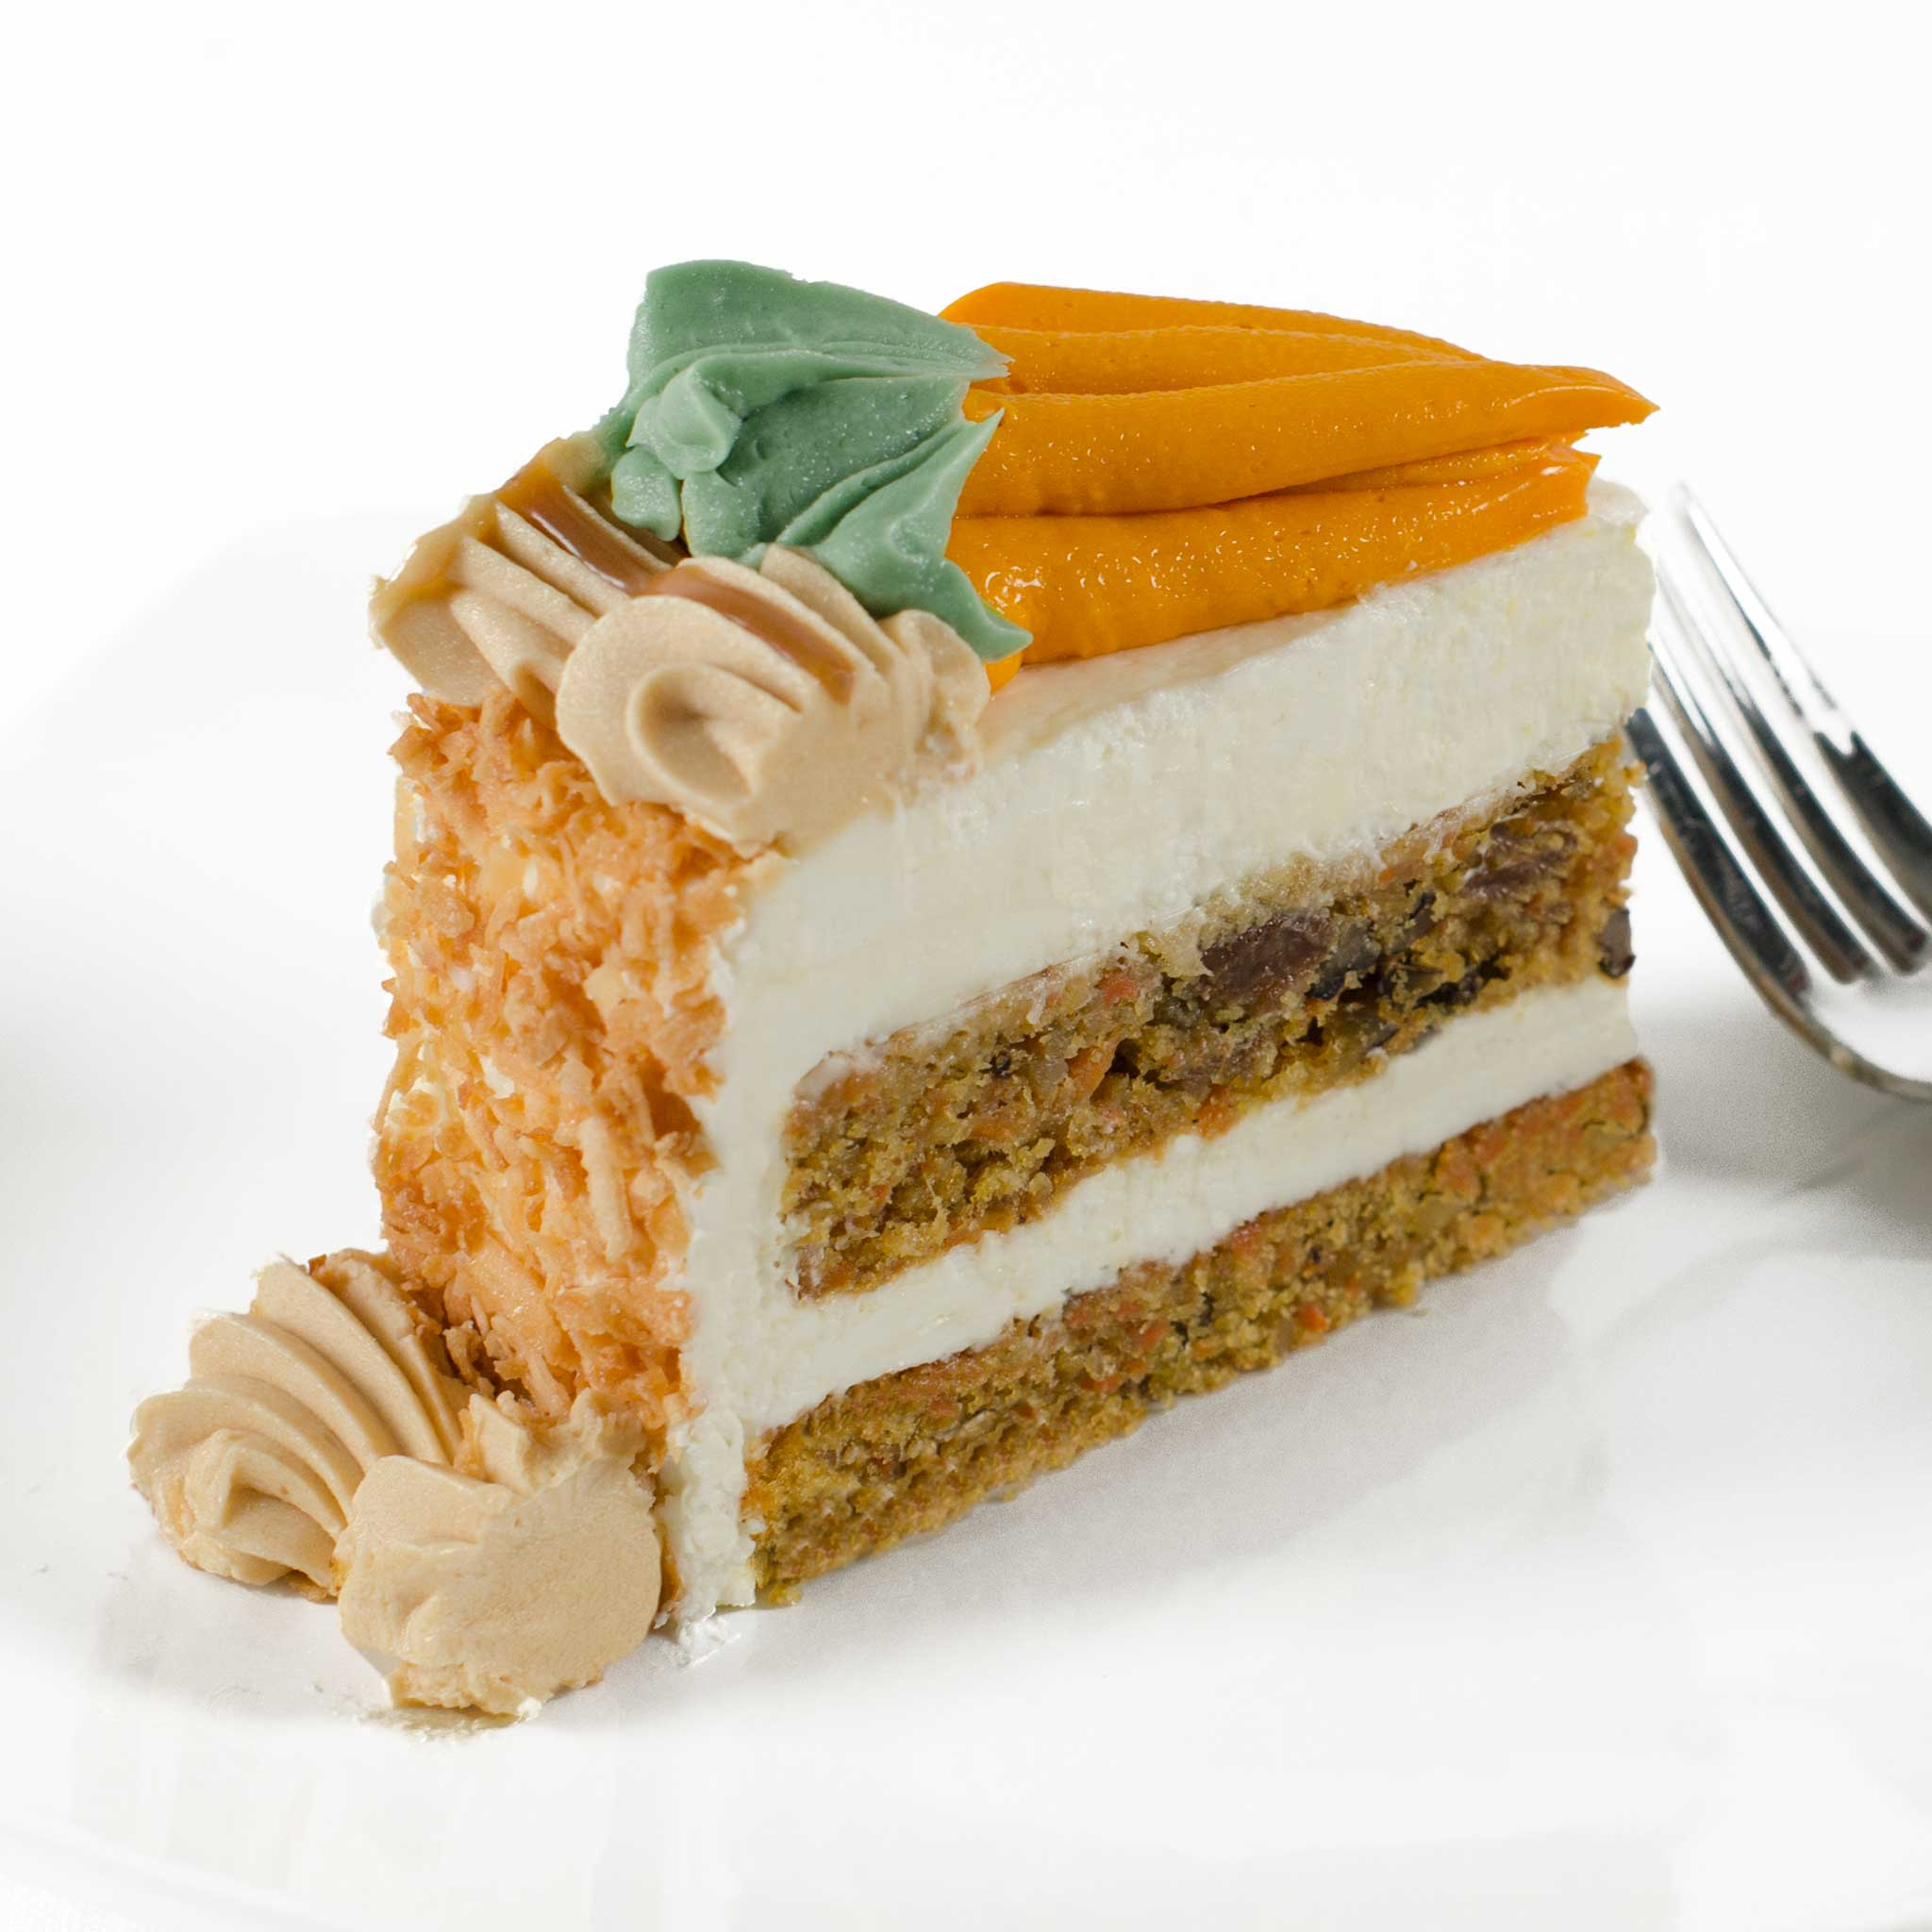 La-Rocca-Carrot-Celebration-Cake-Full-Slab-Slice